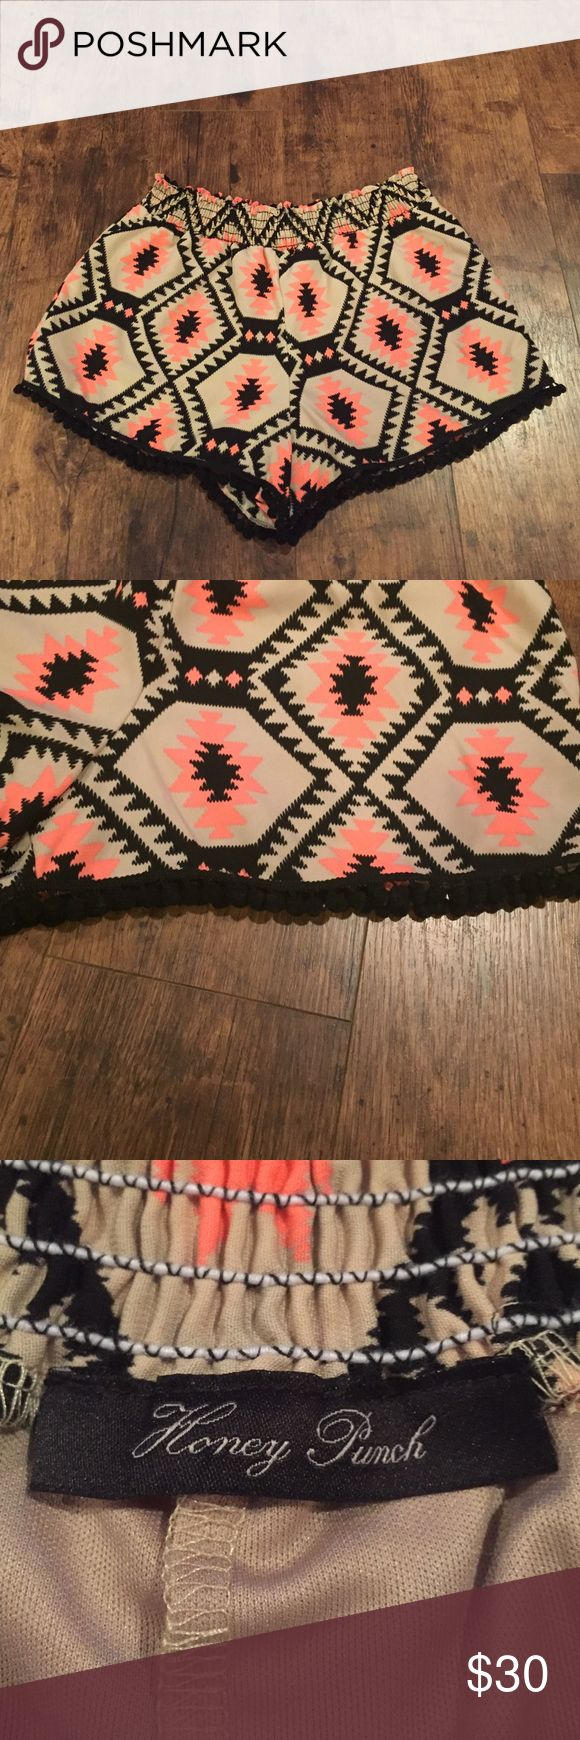 Honey Punch Pom-Pom Tribal shorts Honey Punch pom-pom trimmed tribal shorts in beige, neon coral, and black. Cute shorts for any occasion! Elastic waistband! Great condition, offers welcome! Honey Punch Shorts